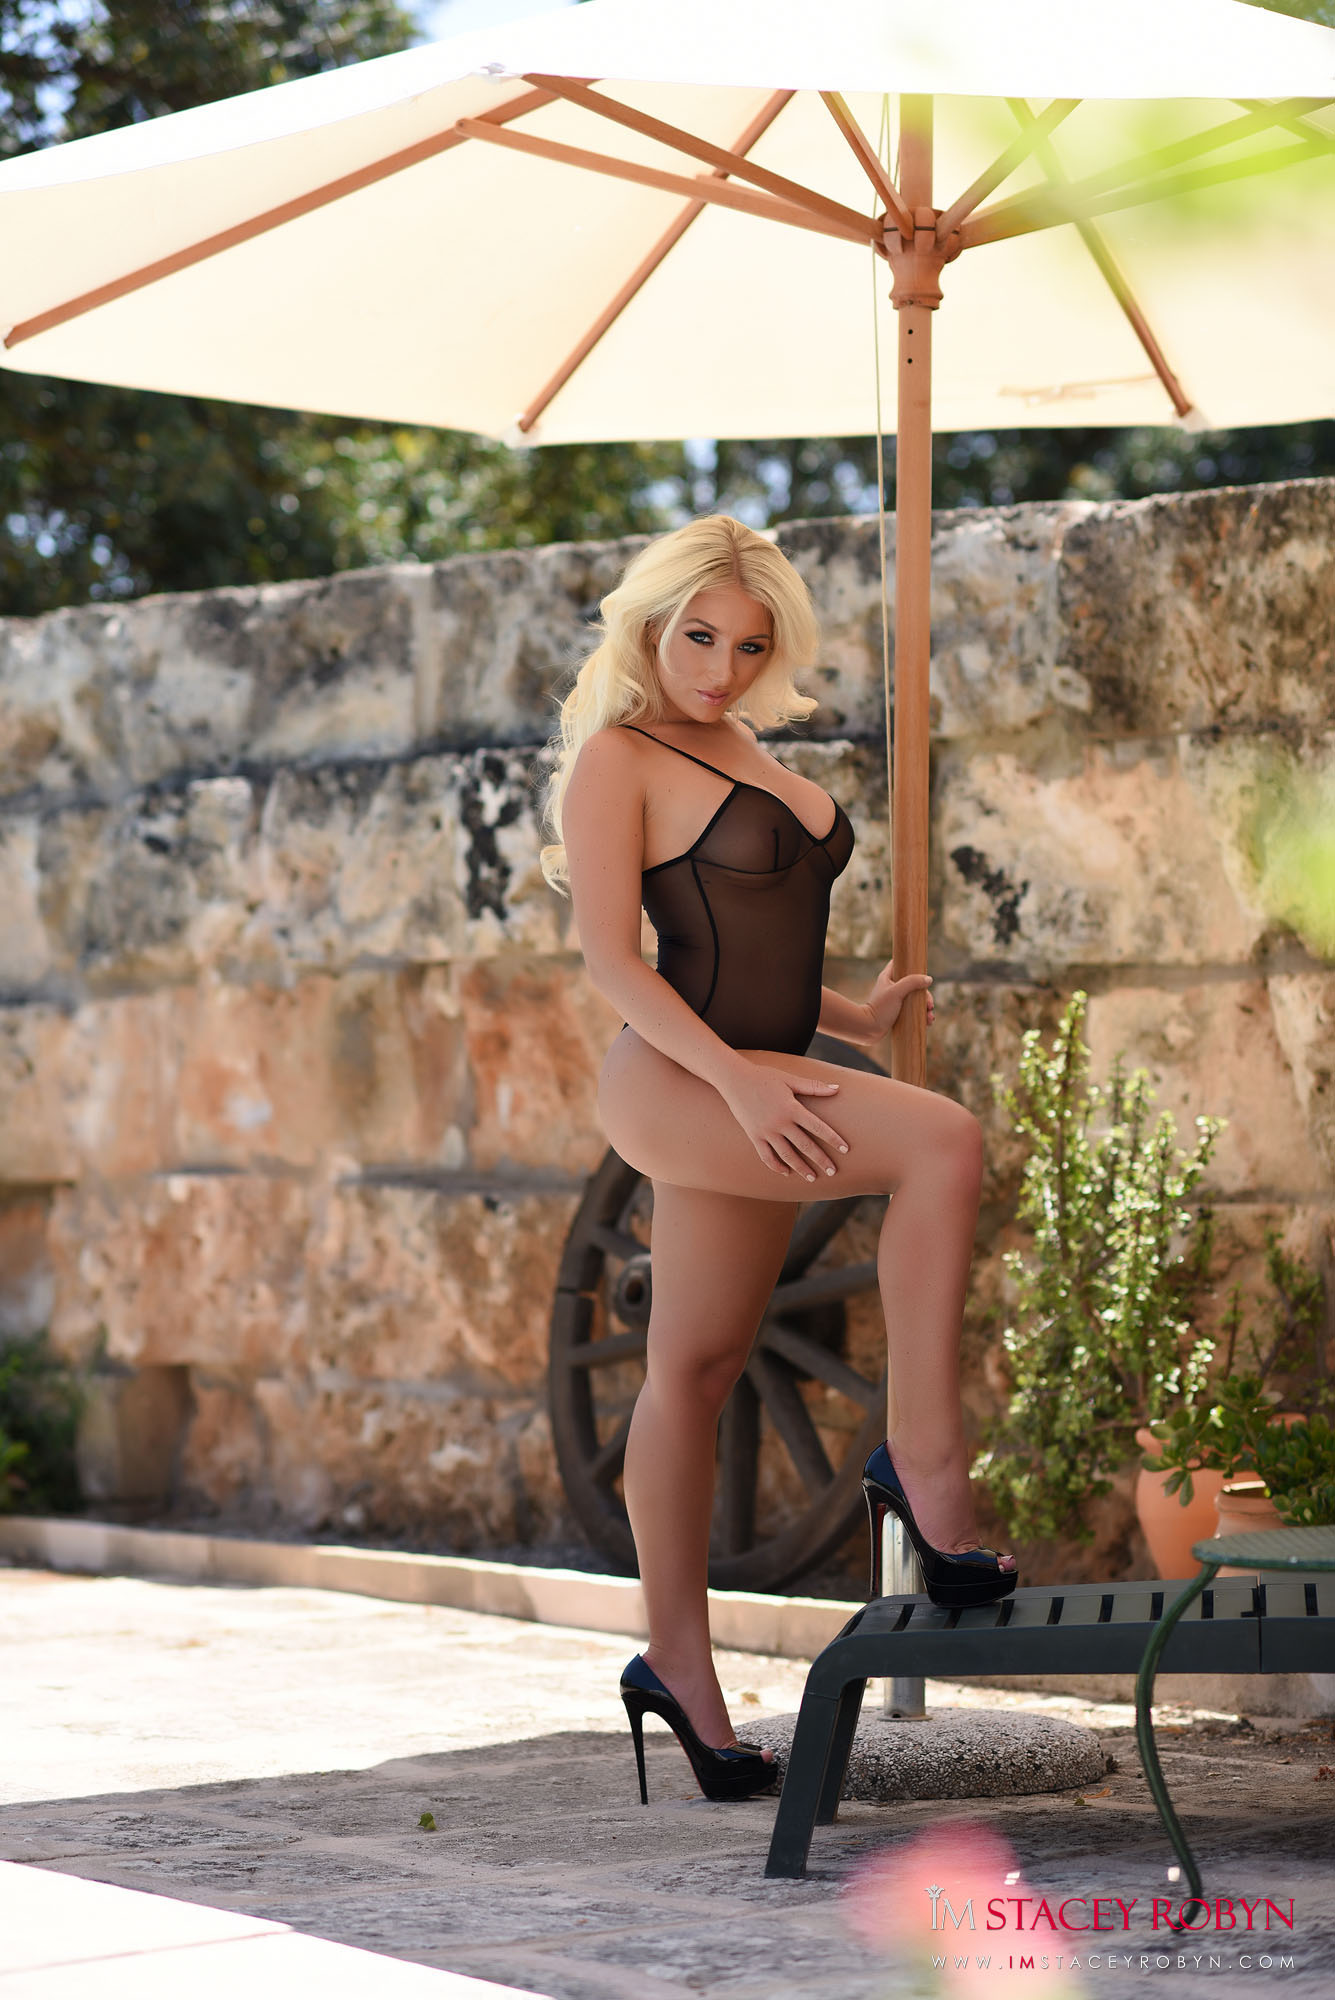 Stacey Robyn looking fabulous on a sun lounger